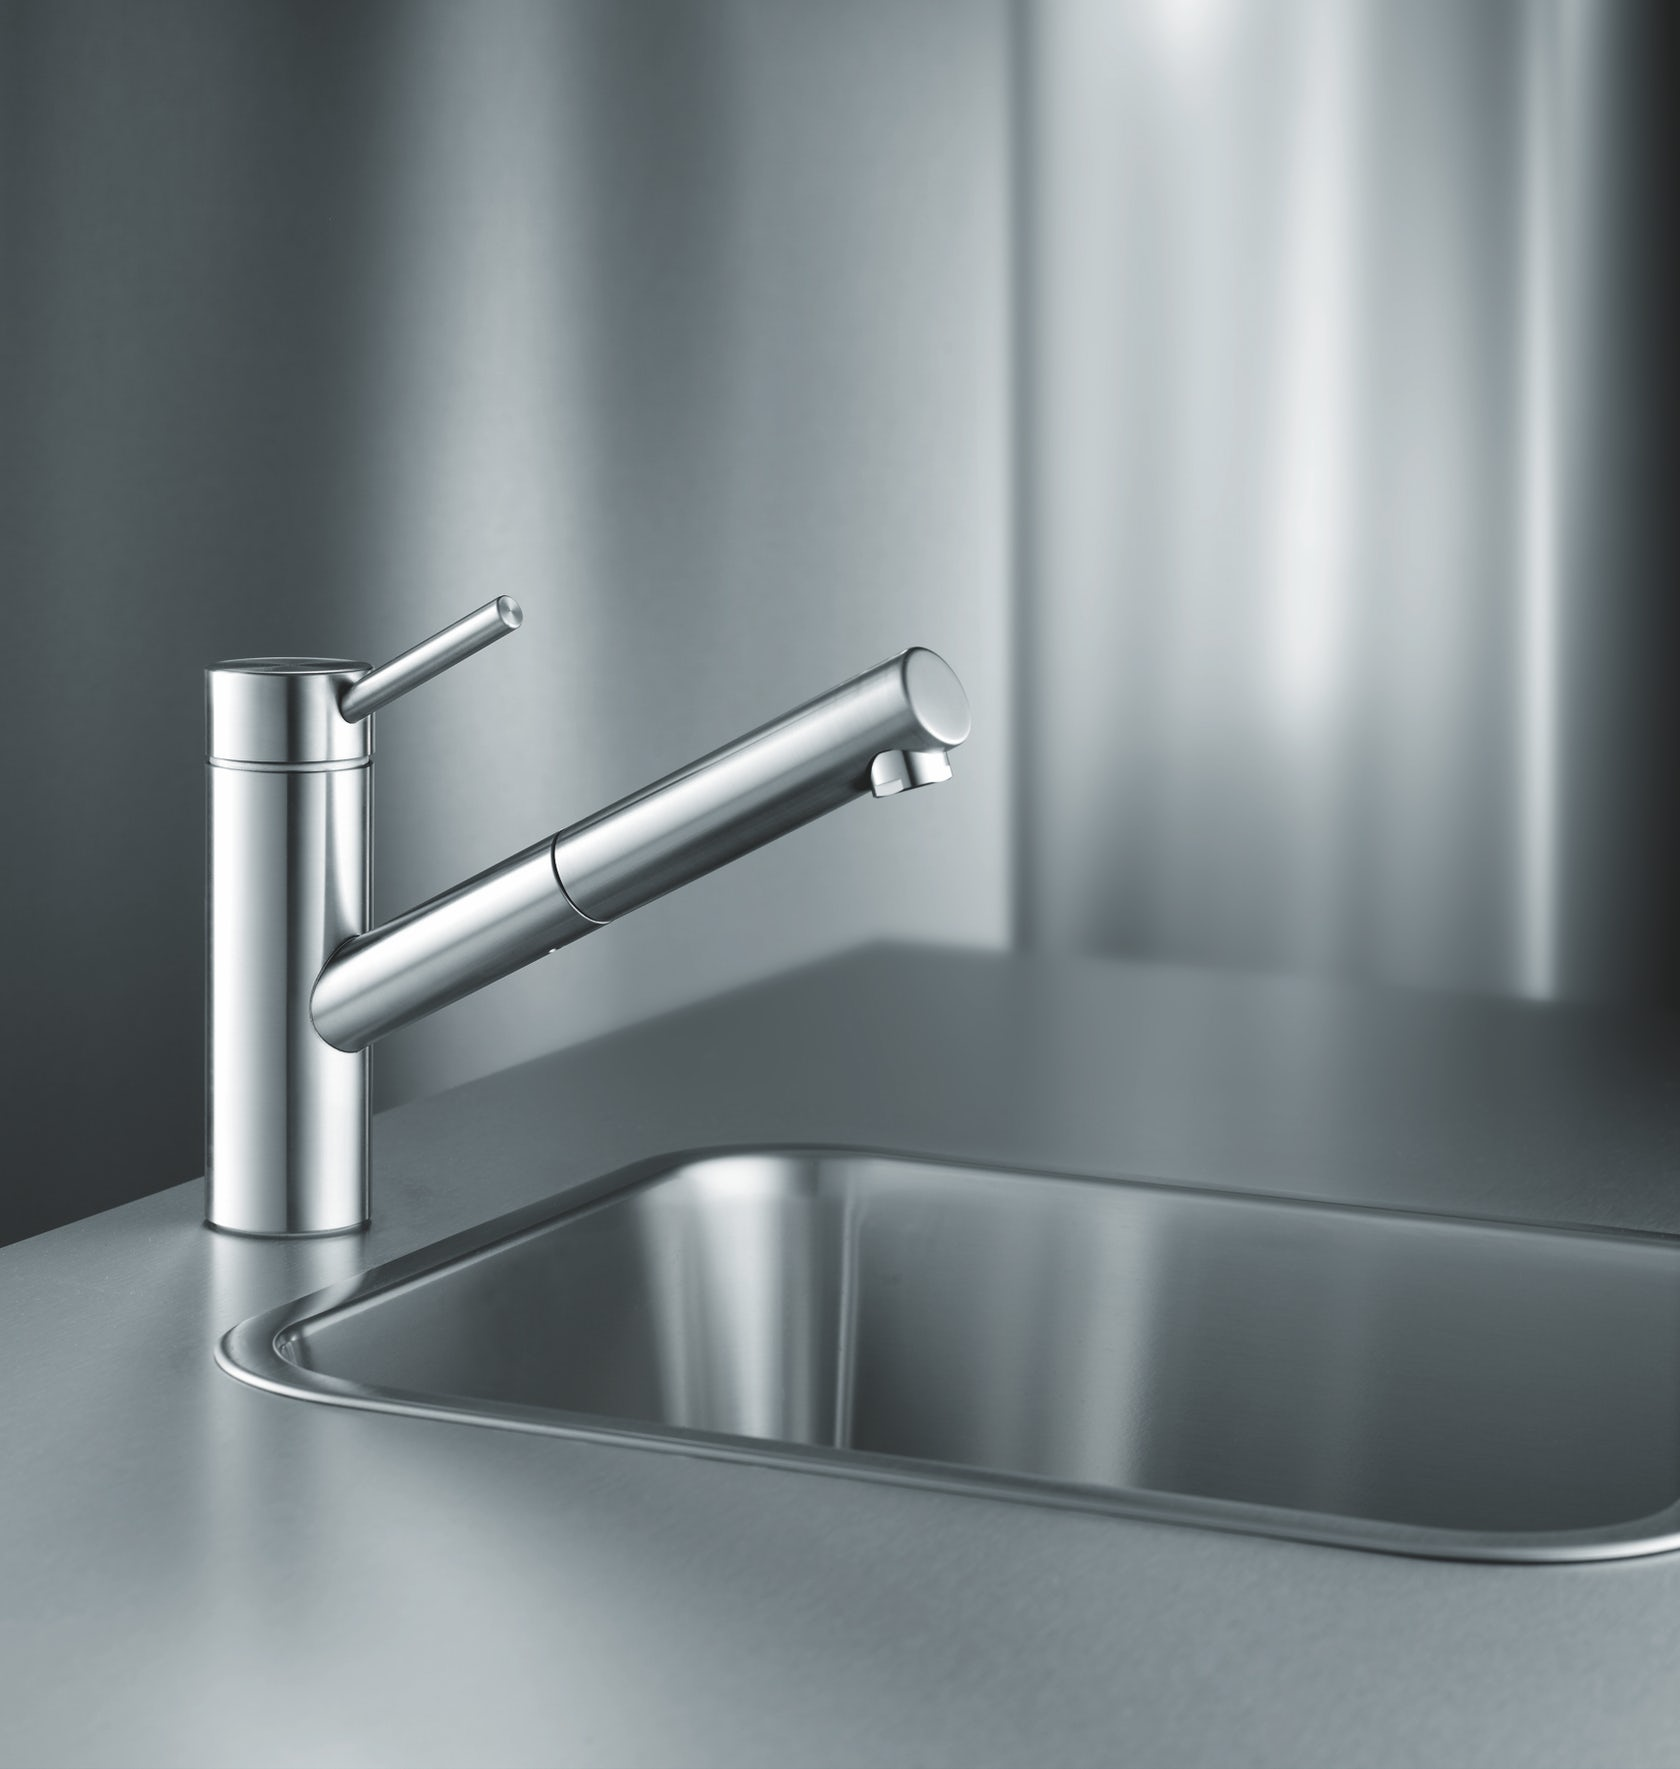 Contemporary Kwc Domo Kitchen Faucet Images - Faucet Collections ...